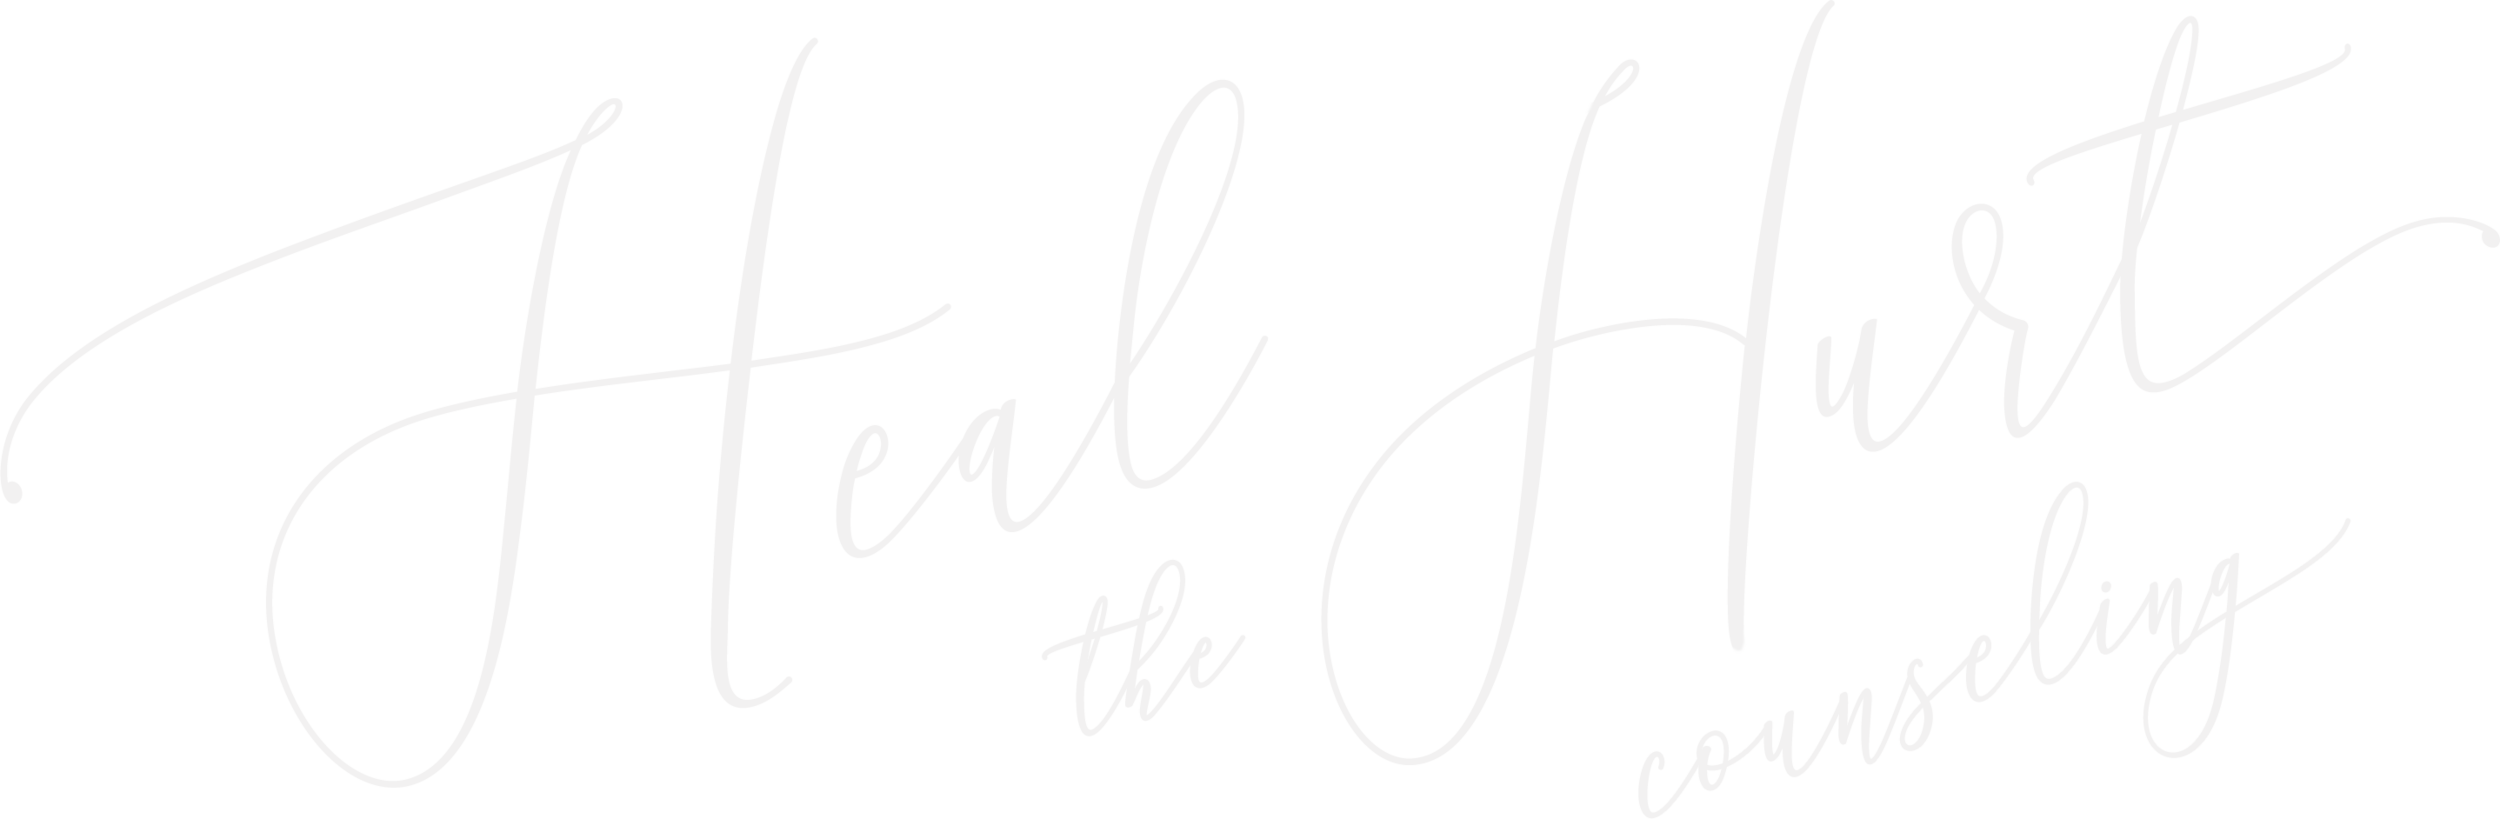 Heal the Hurt Counseling